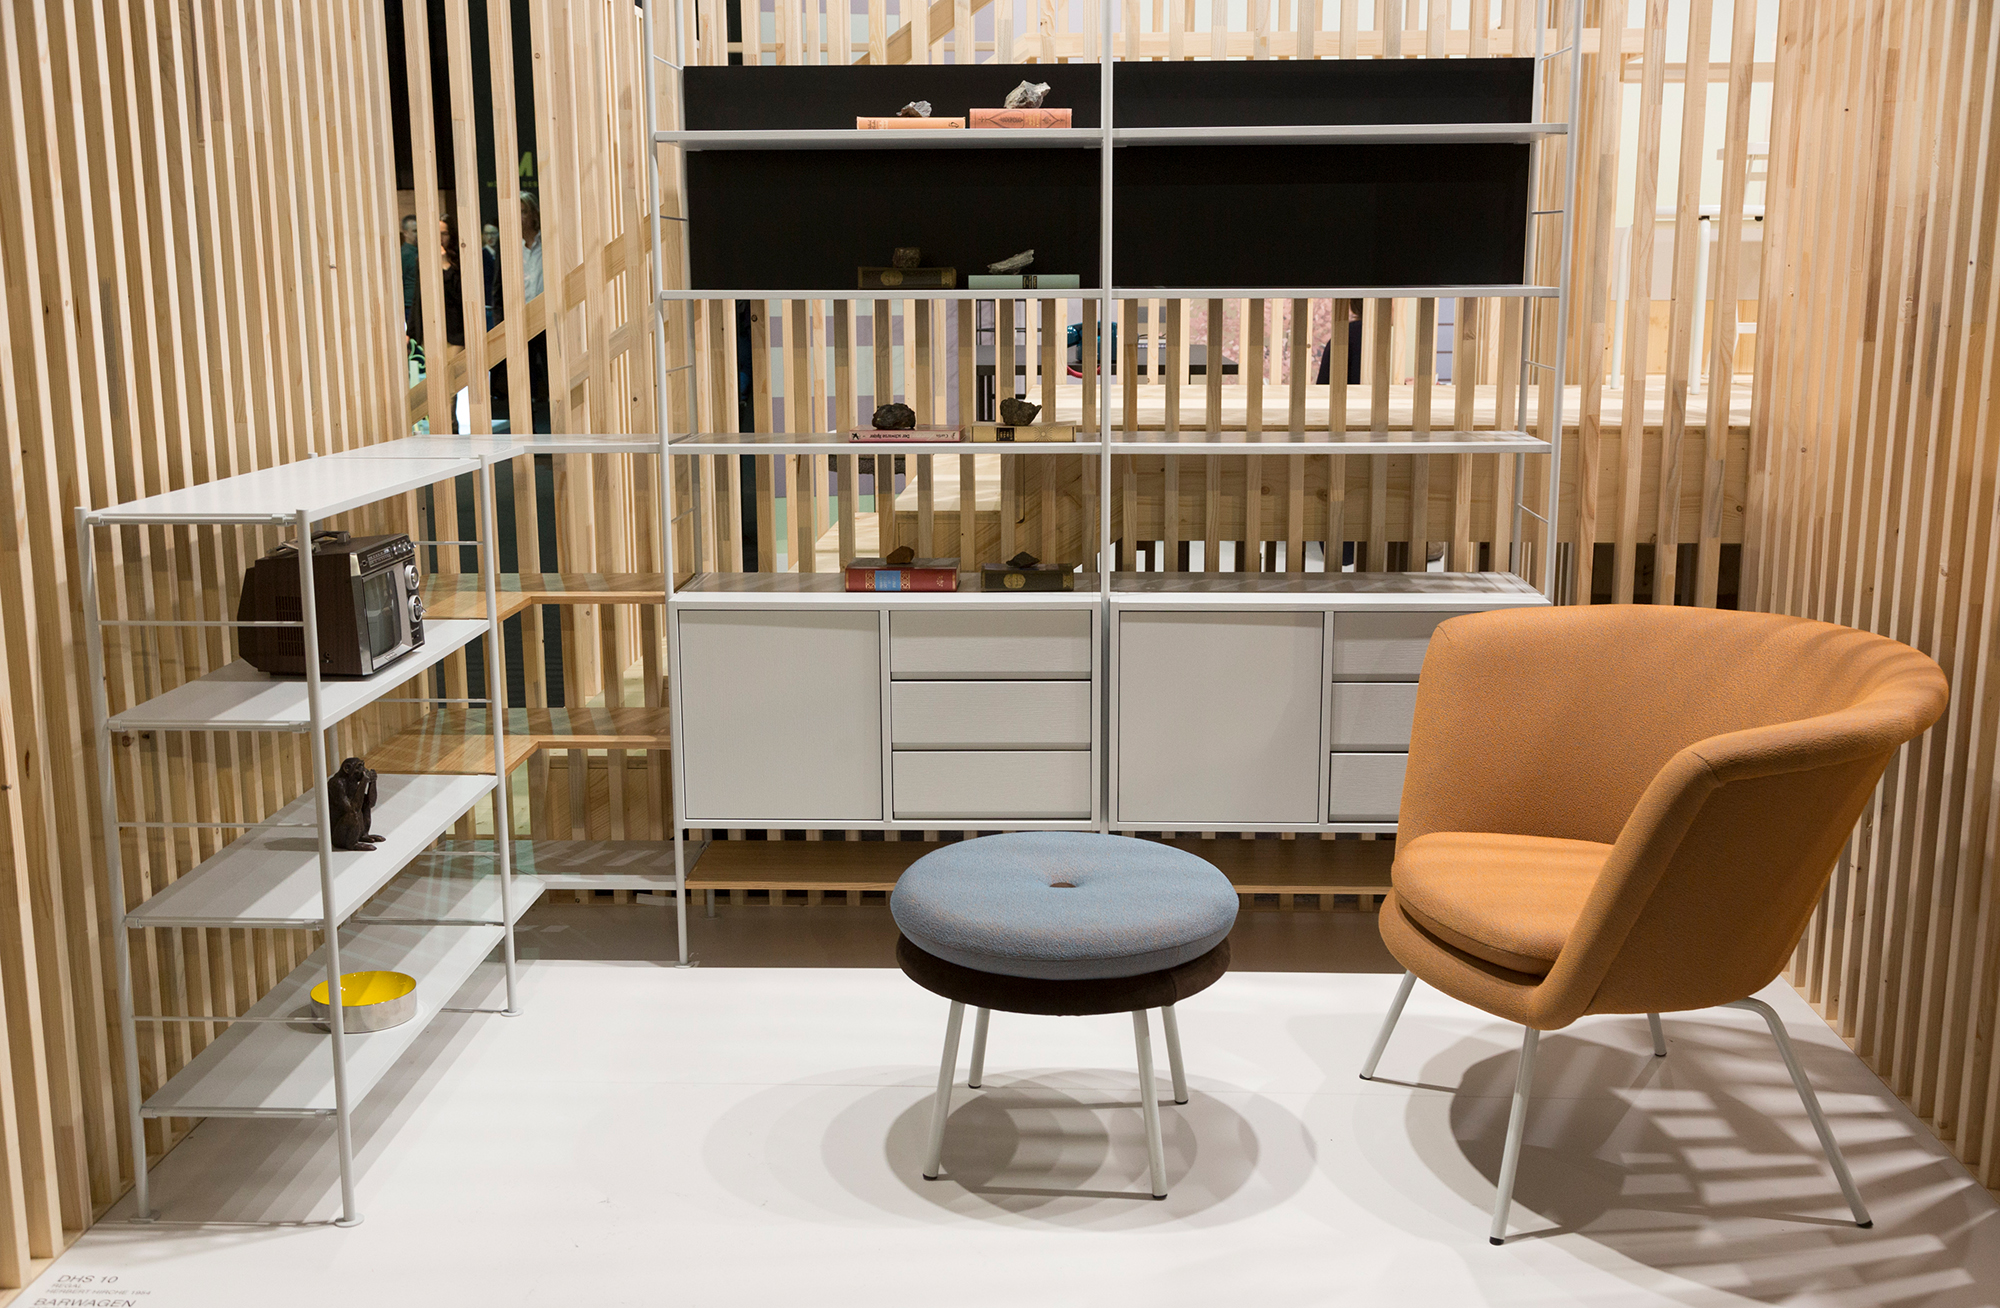 The trade fair stand of Richard Lampert at imm cologne 2020 was in fact one of the most innovative and showed the new furniture in narrowly separated rooms; visitors could view the rooms from above from a catwalk – a contribution to the mega-trend of